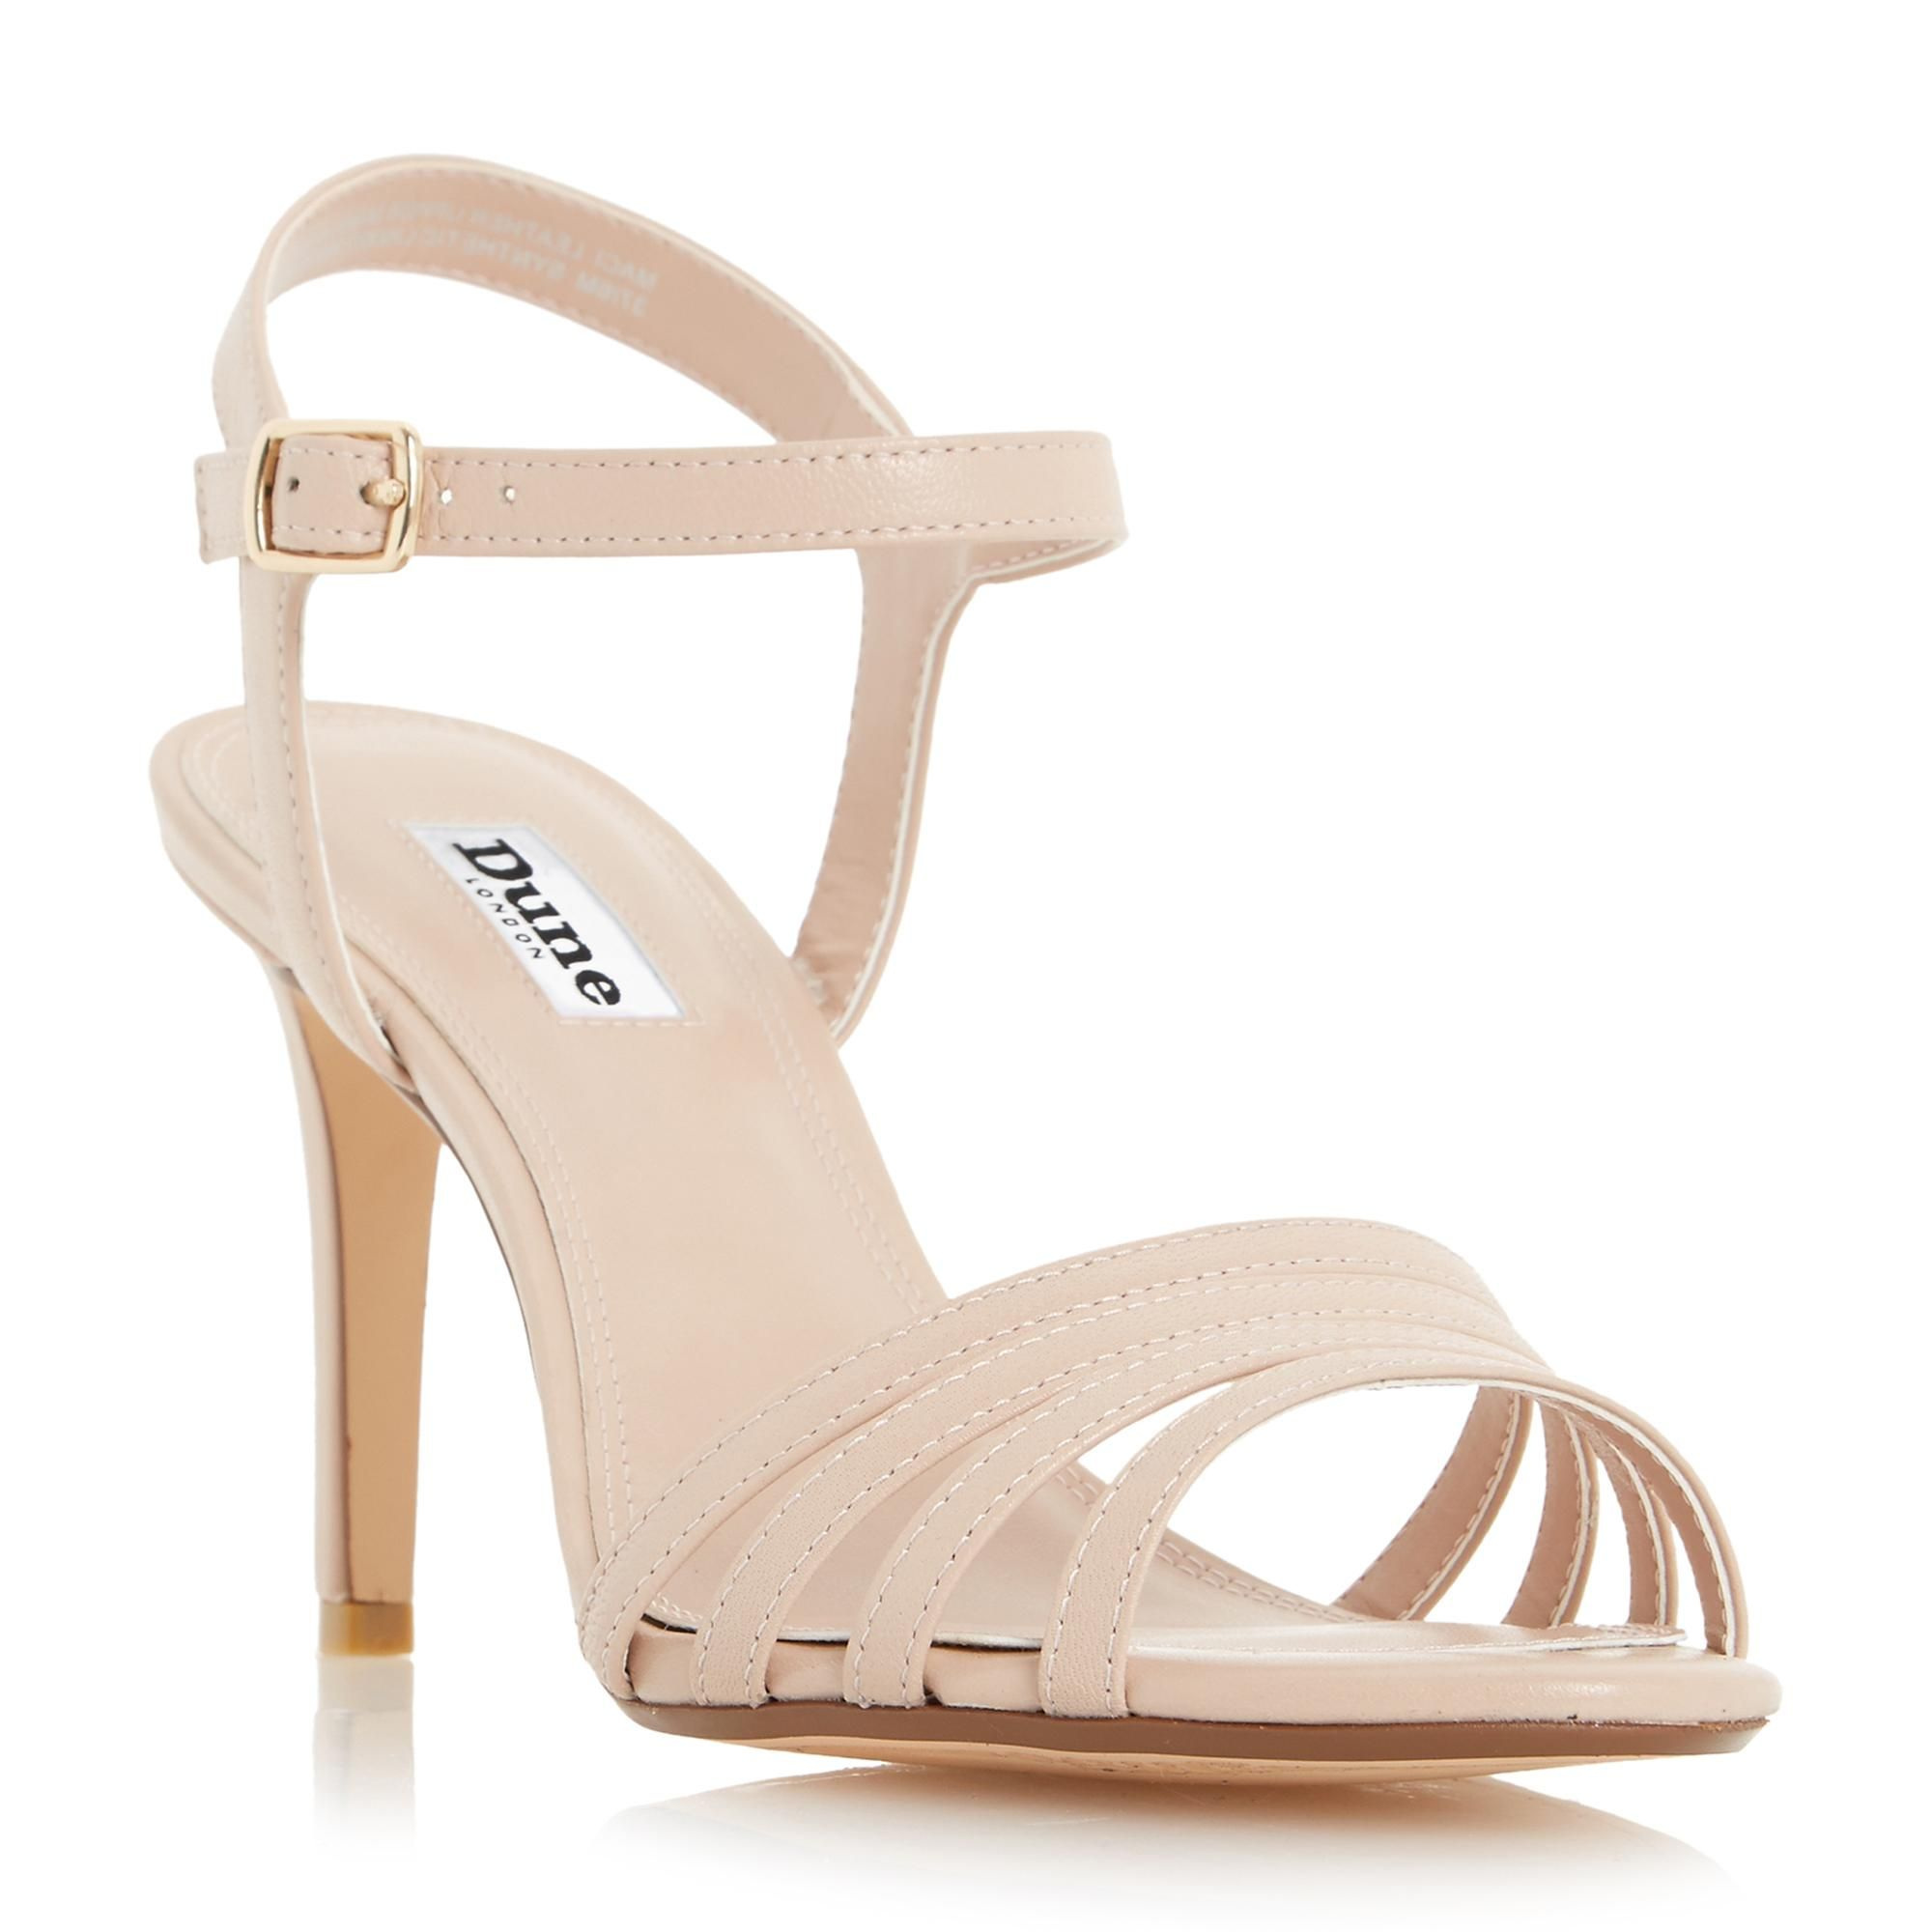 DUNE LADIES MACI - Strappy Two Part Mid Heel Sandal - nude | Dune Shoes  Online